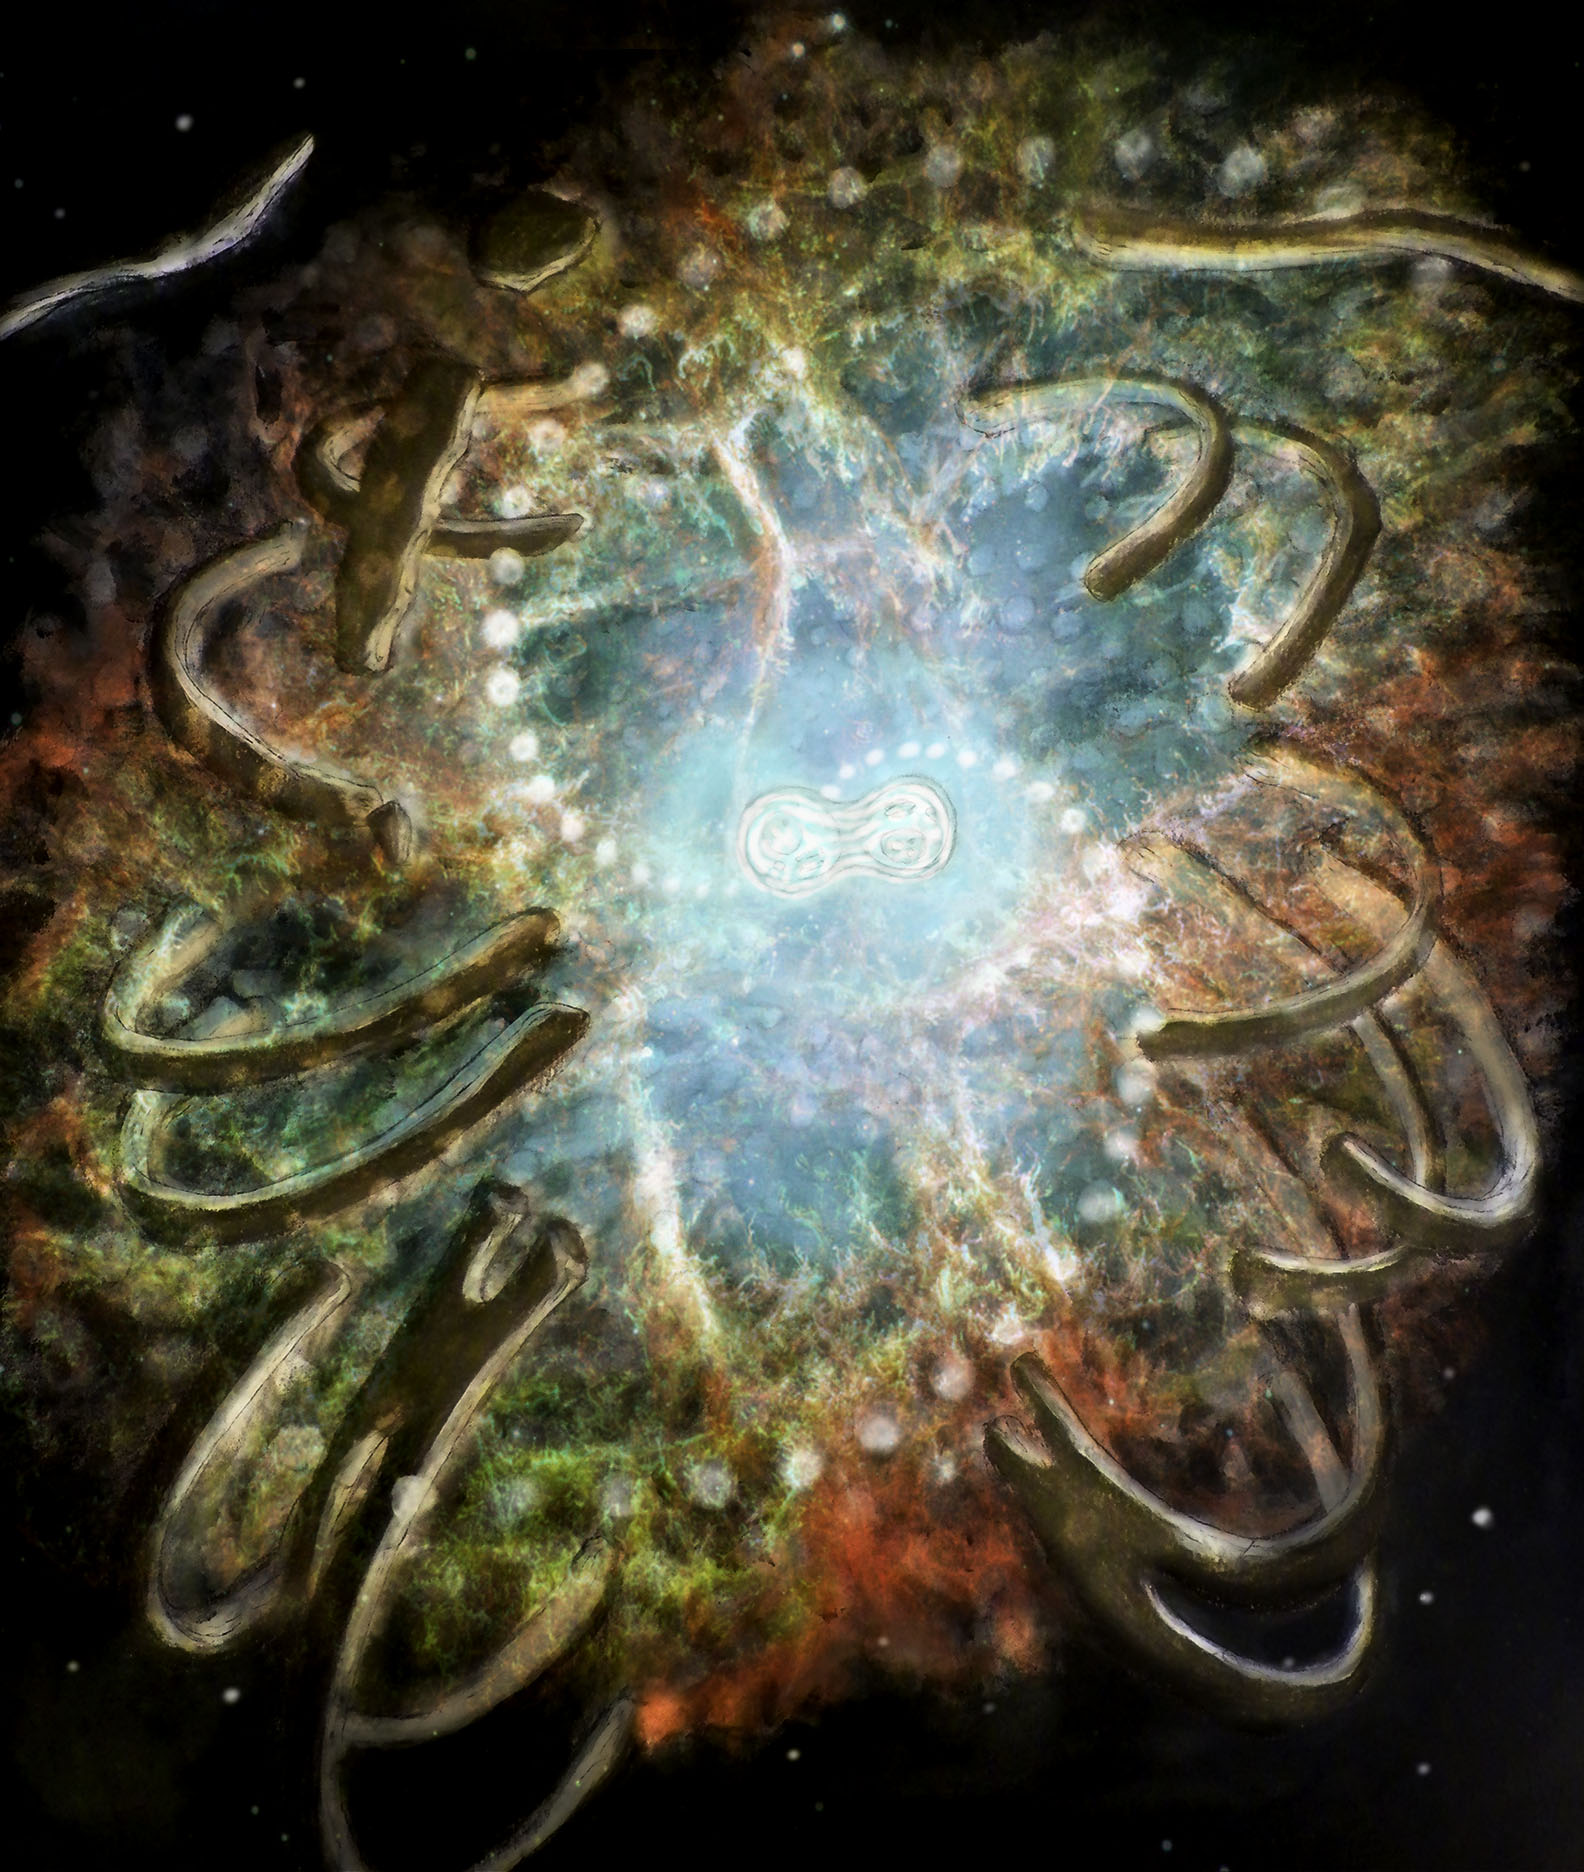 Supernova: The Substance of Life